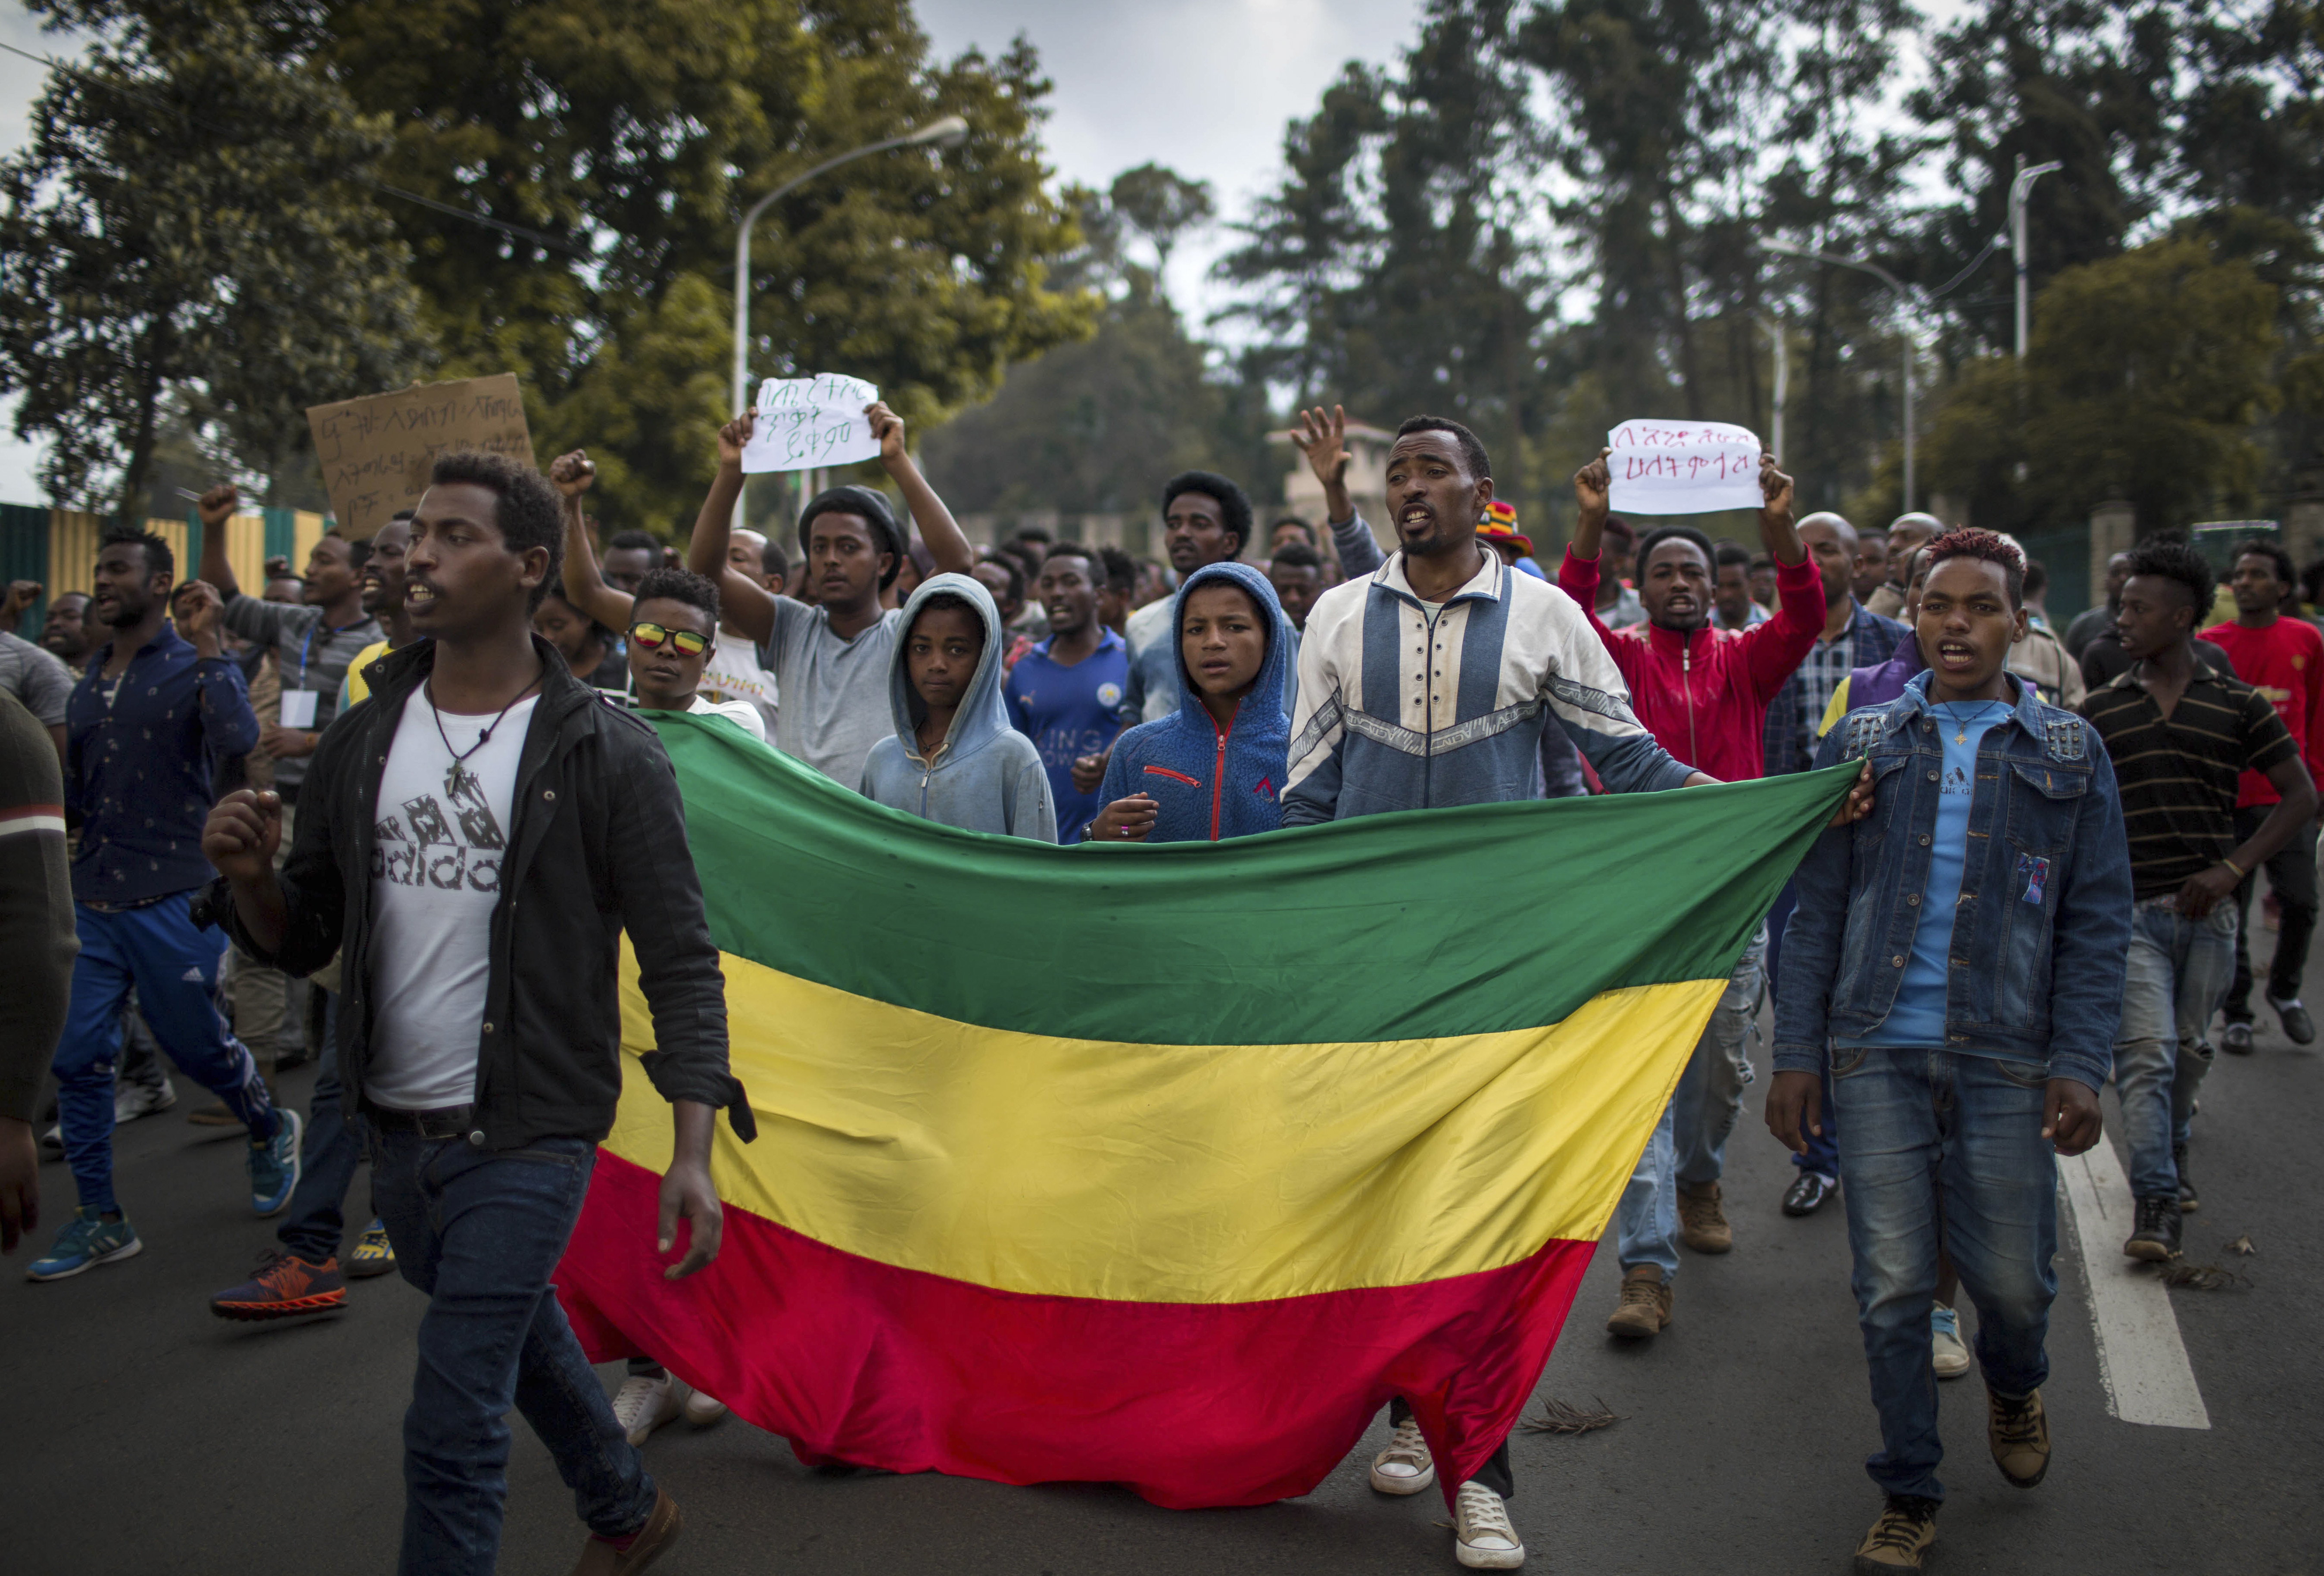 """Thousands of protestors from the capital and those displaced by ethnic-based violence over the weekend in Burayu, demonstrate to demand justice from the government in Addis Ababa, Ethiopia Monday, Sept. 17, 2018. Several thousand Ethiopians have gone out onto the streets of the capital to protest ethnic-based attacks in the outskirts of the city in which more than 20 people died over the weekend. Three banners in Amharic from left to right read """"Justice for the people of Amhara, Tigray and Southerners"""", """"Stop ethnic-based attacks"""" and """"One mouth, but two tongues""""."""